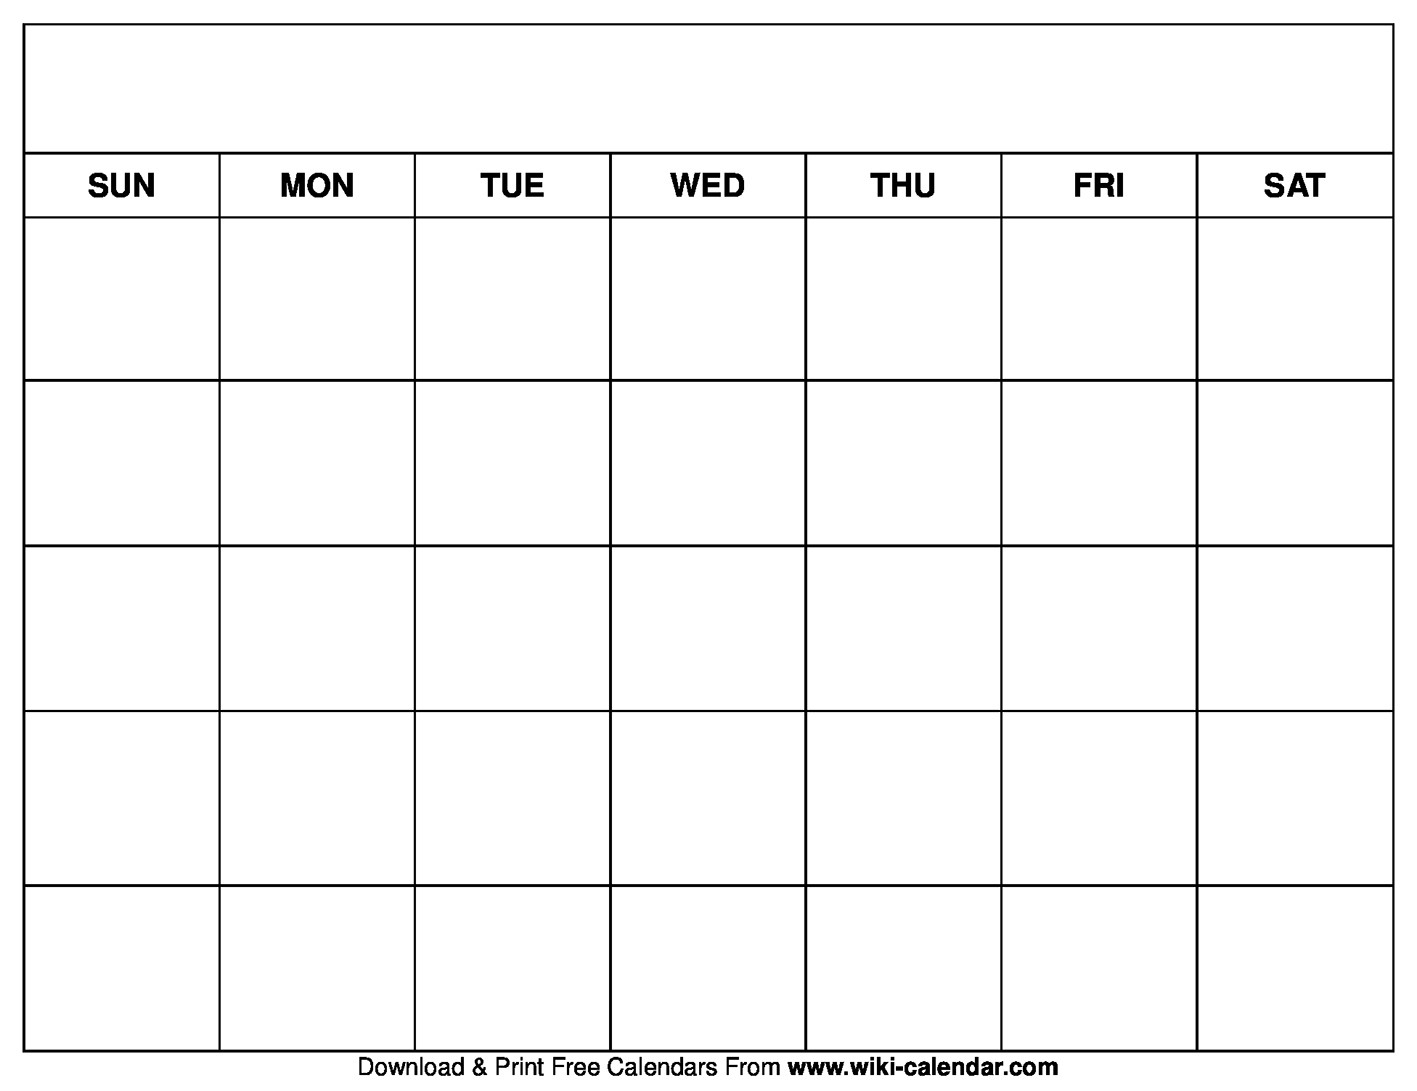 Printable Blank Calendar Templates  Print Free Calendars Without Downloading